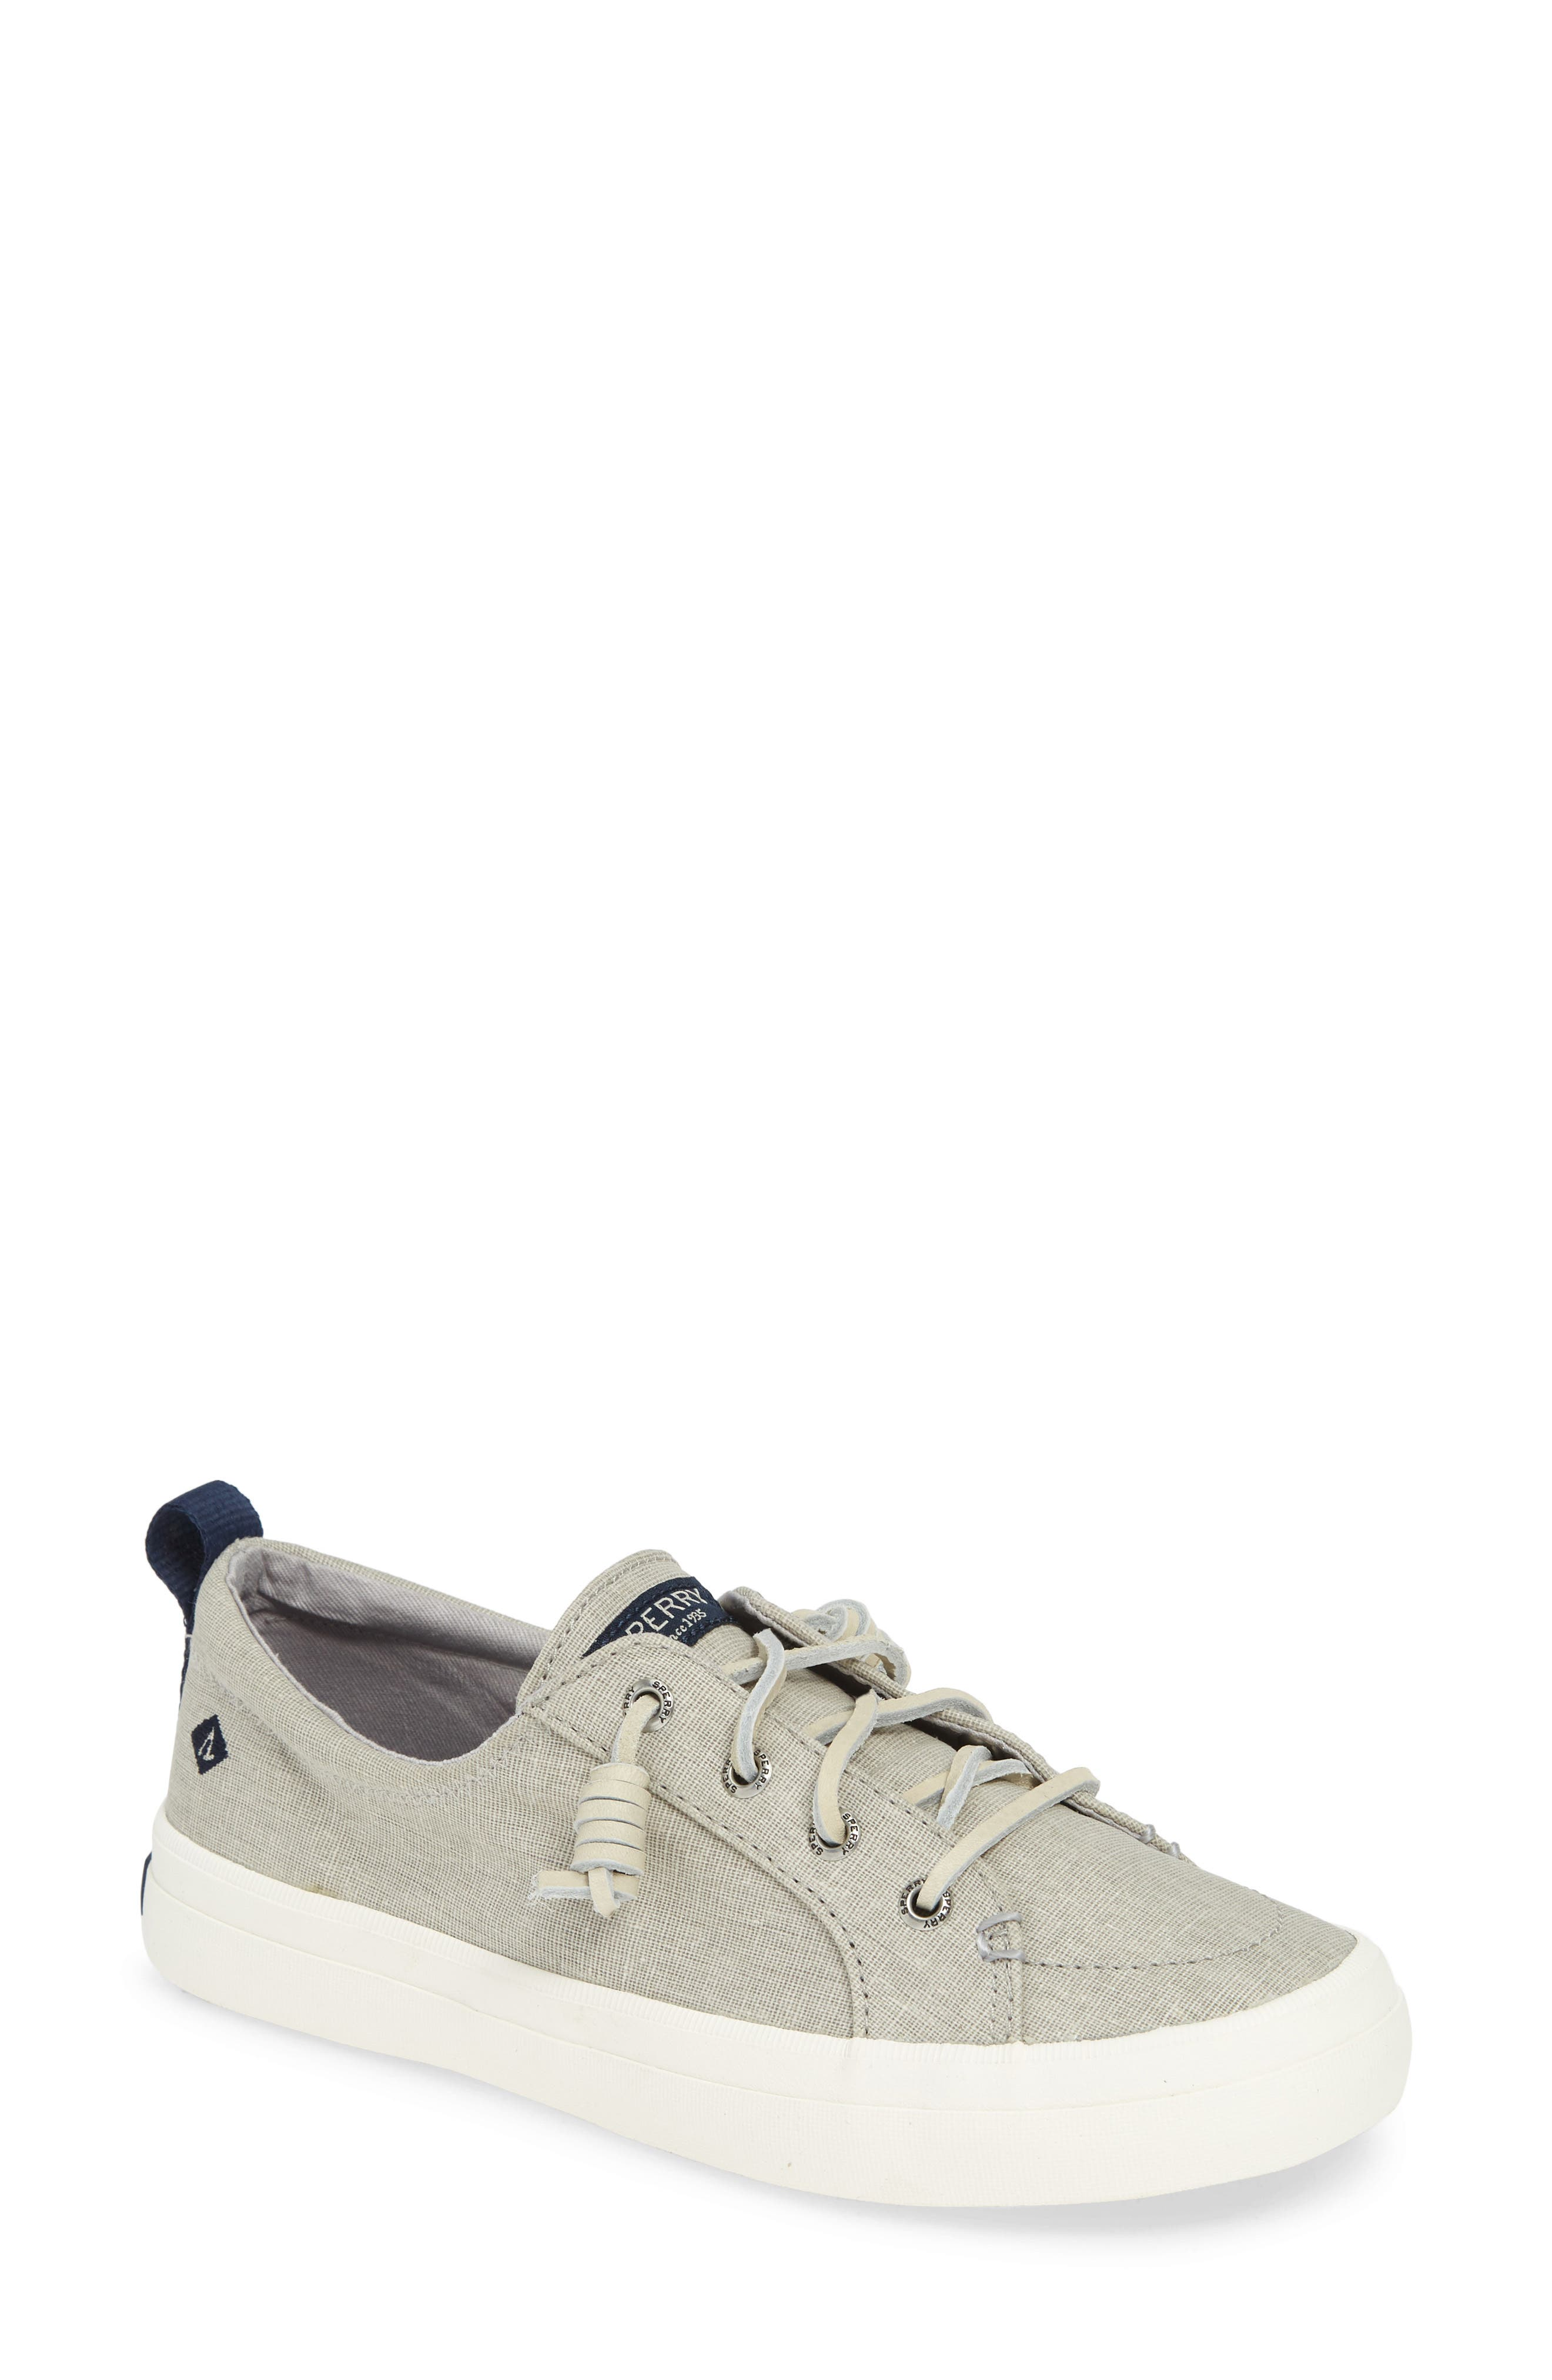 SPERRY, Crest Vibe Sneaker, Main thumbnail 1, color, GREY LINEN FABRIC